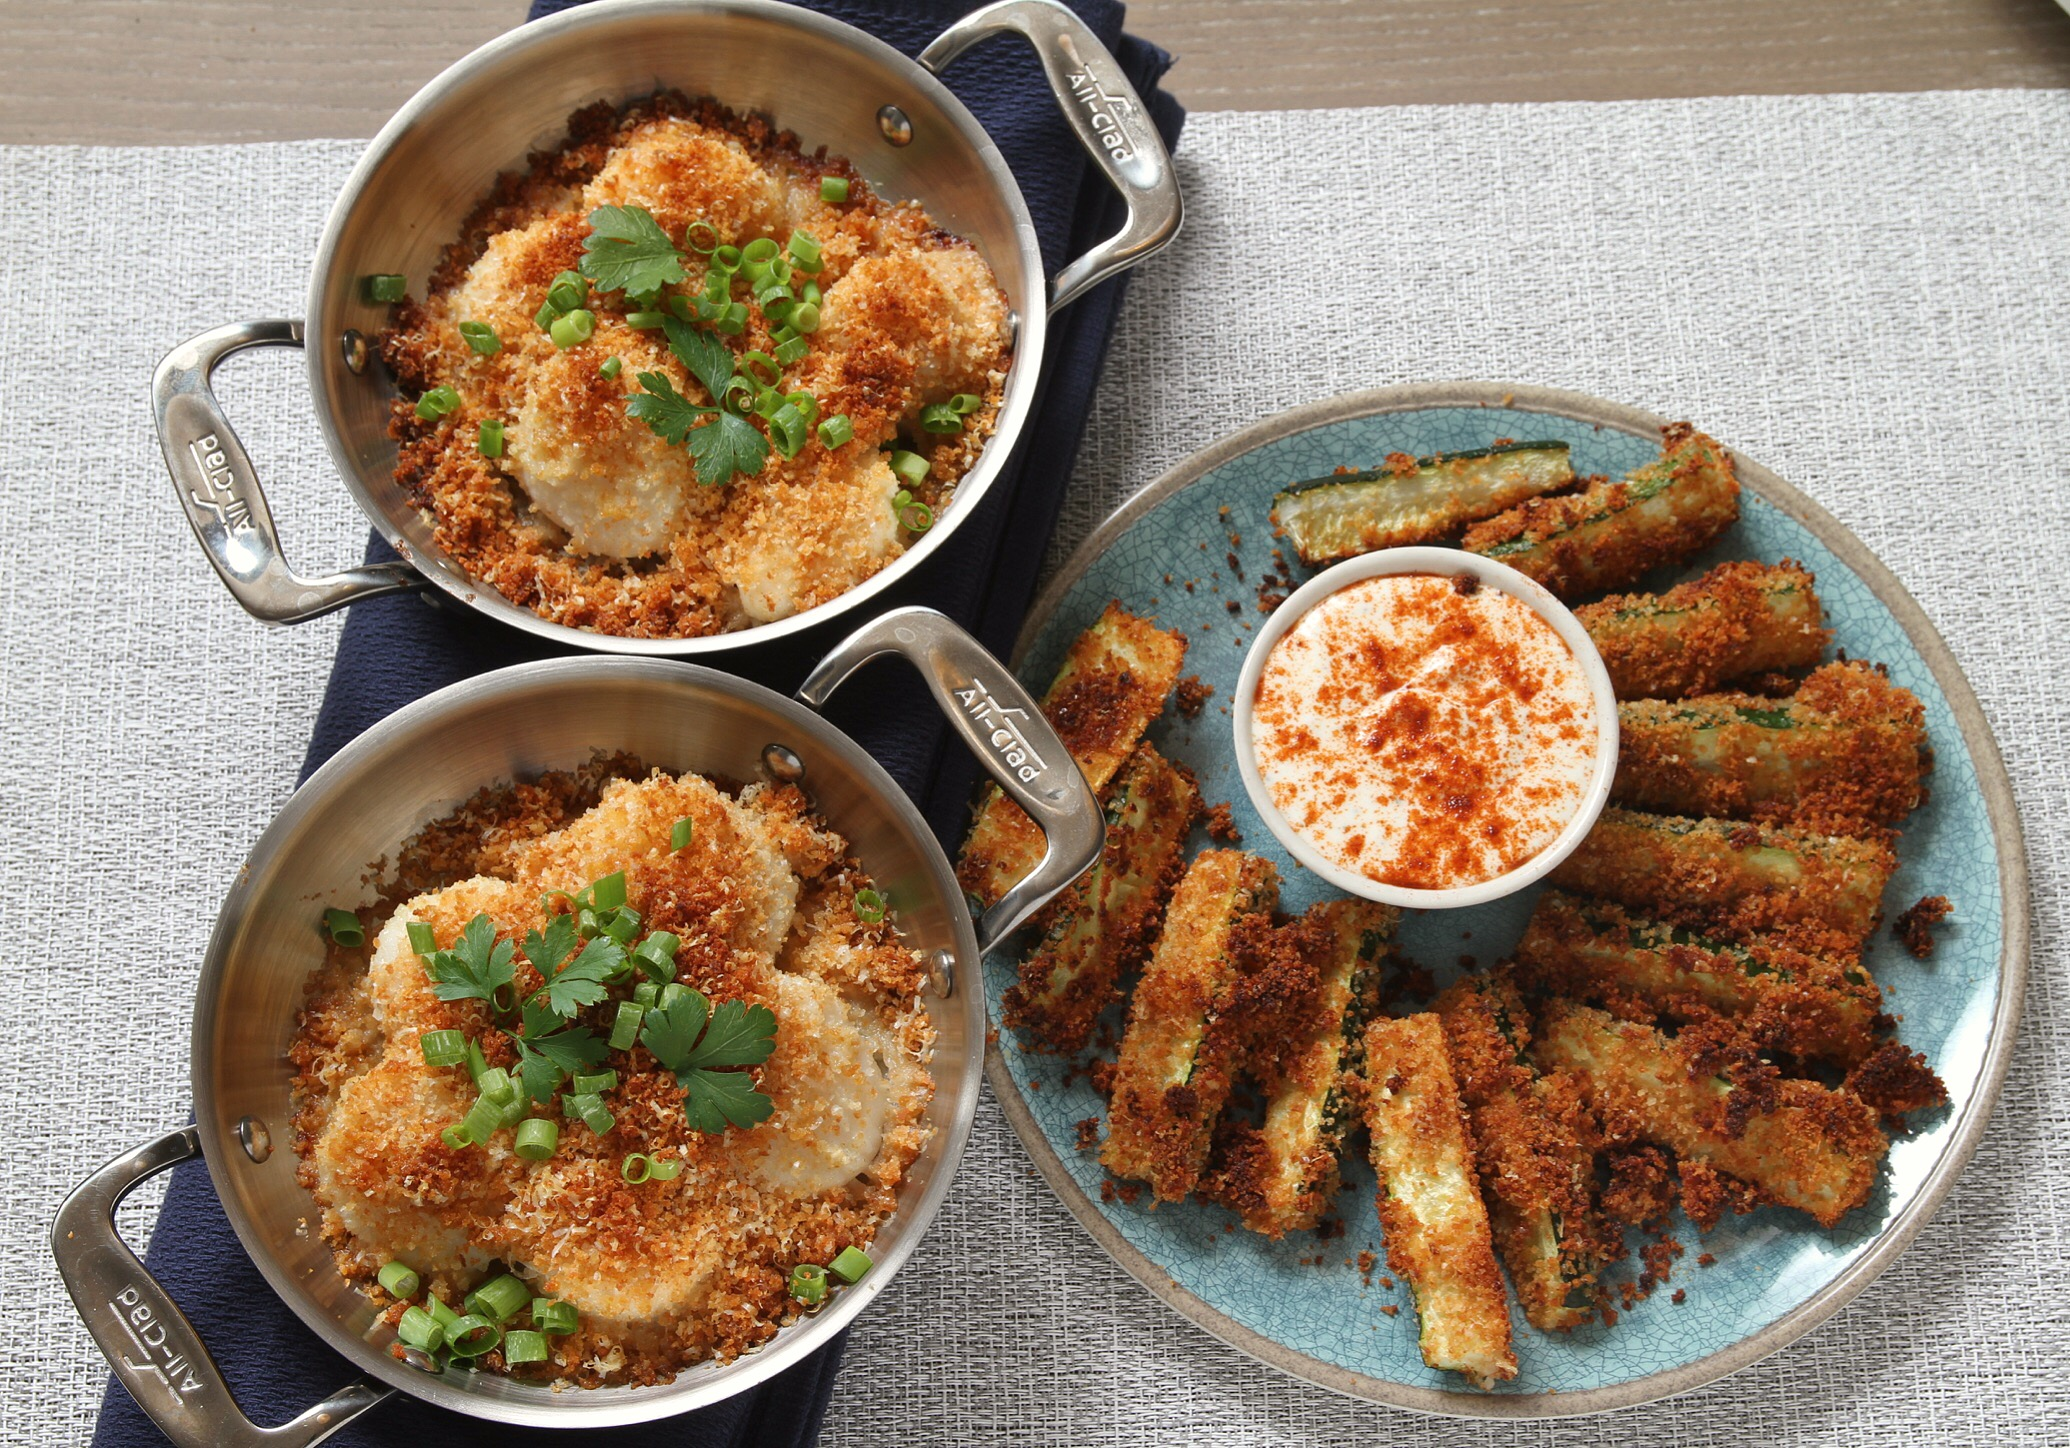 Baked scallops and baked zucchini sticks.